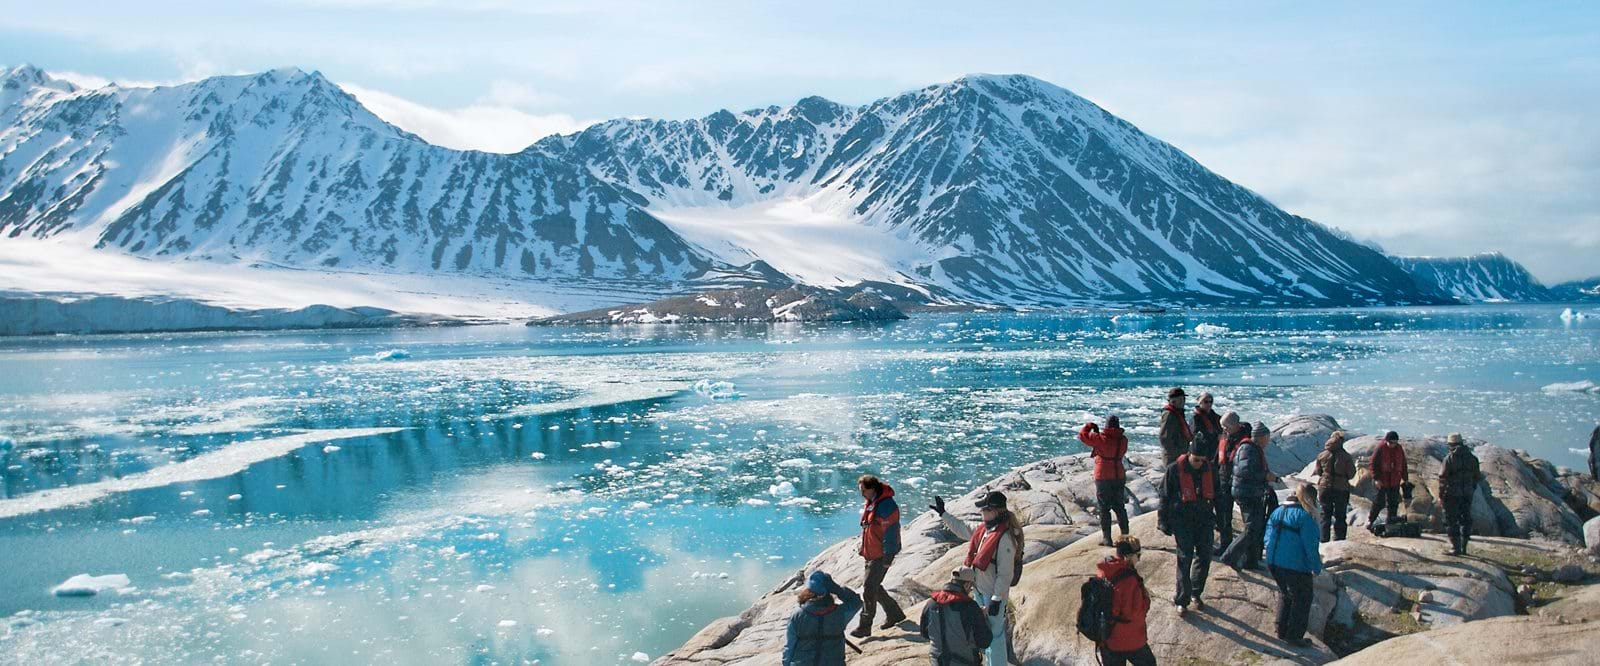 Svalbard, Arctic cruise, polar expedition, expedition cruise, holiday